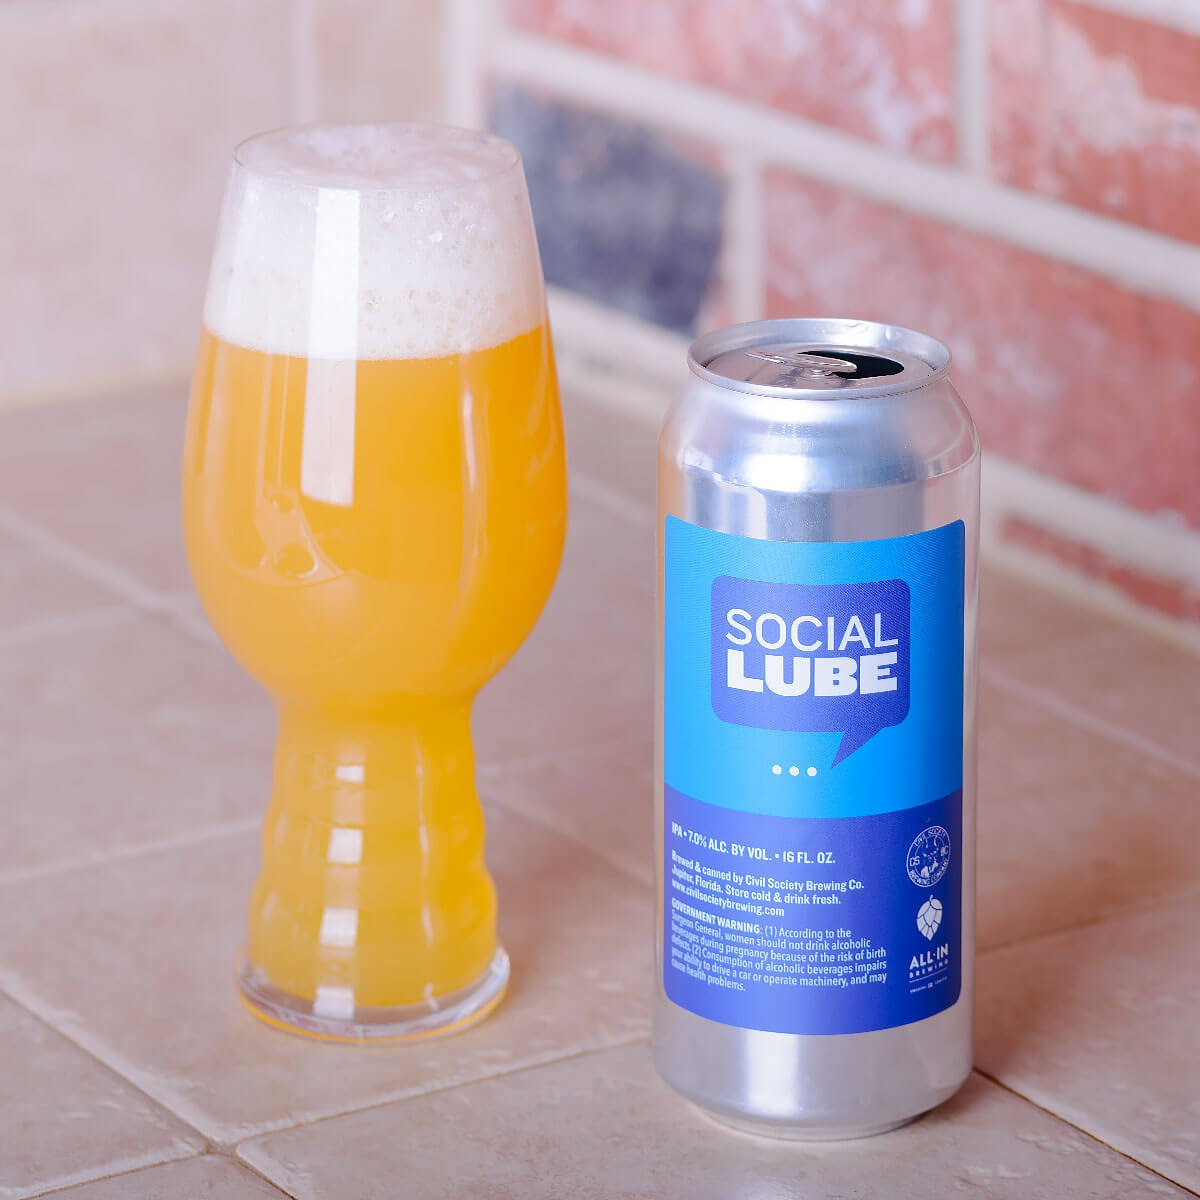 Social Lube, an American IPA by Civil Society Brewing Co. and All In Brewing